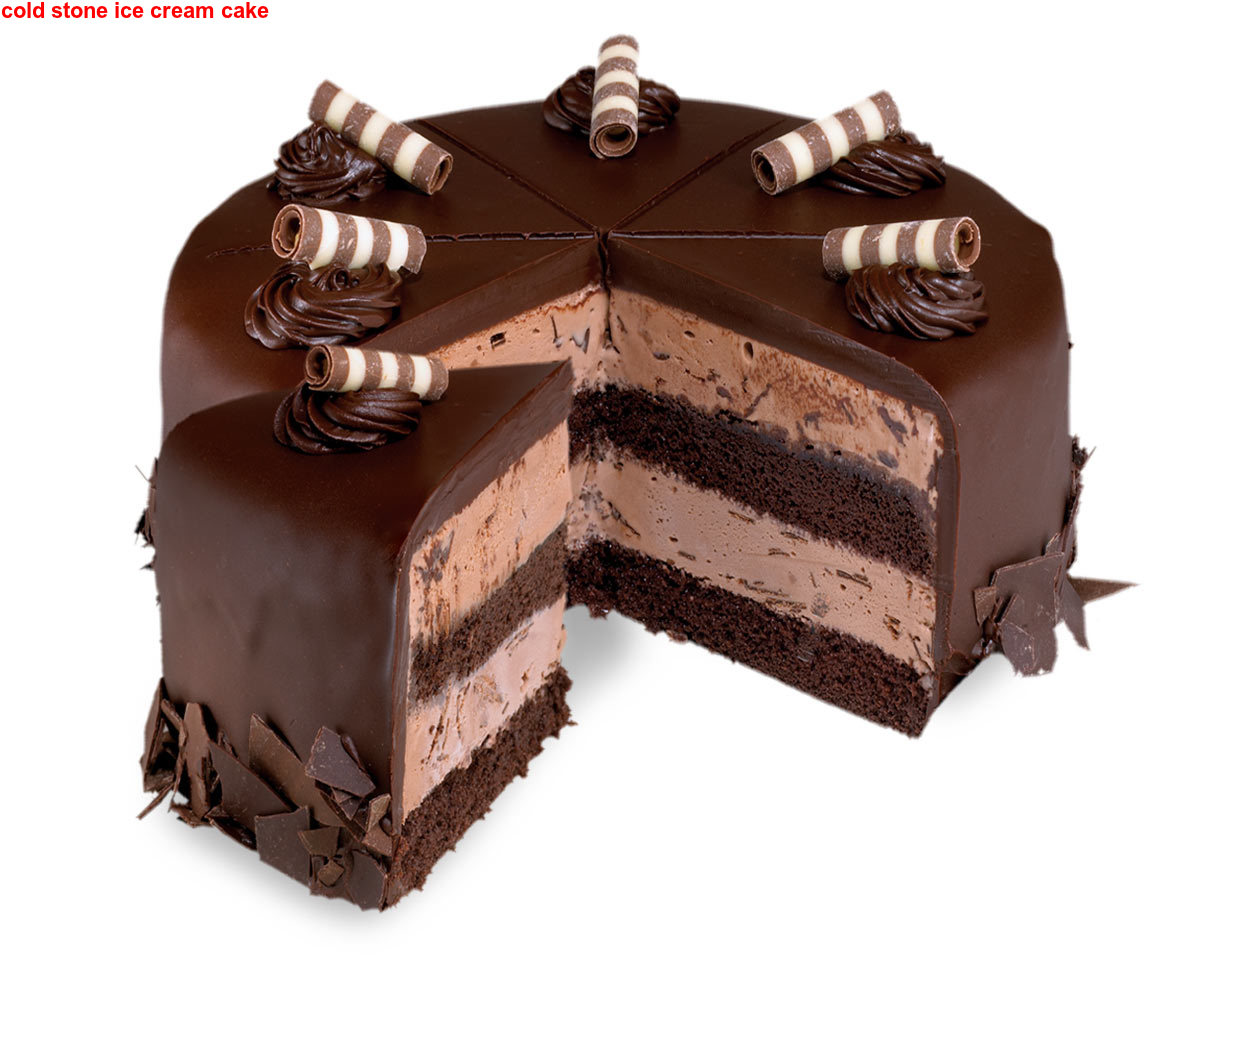 Cold Stone Ice Cream Cake 2015 The Best Party Cake